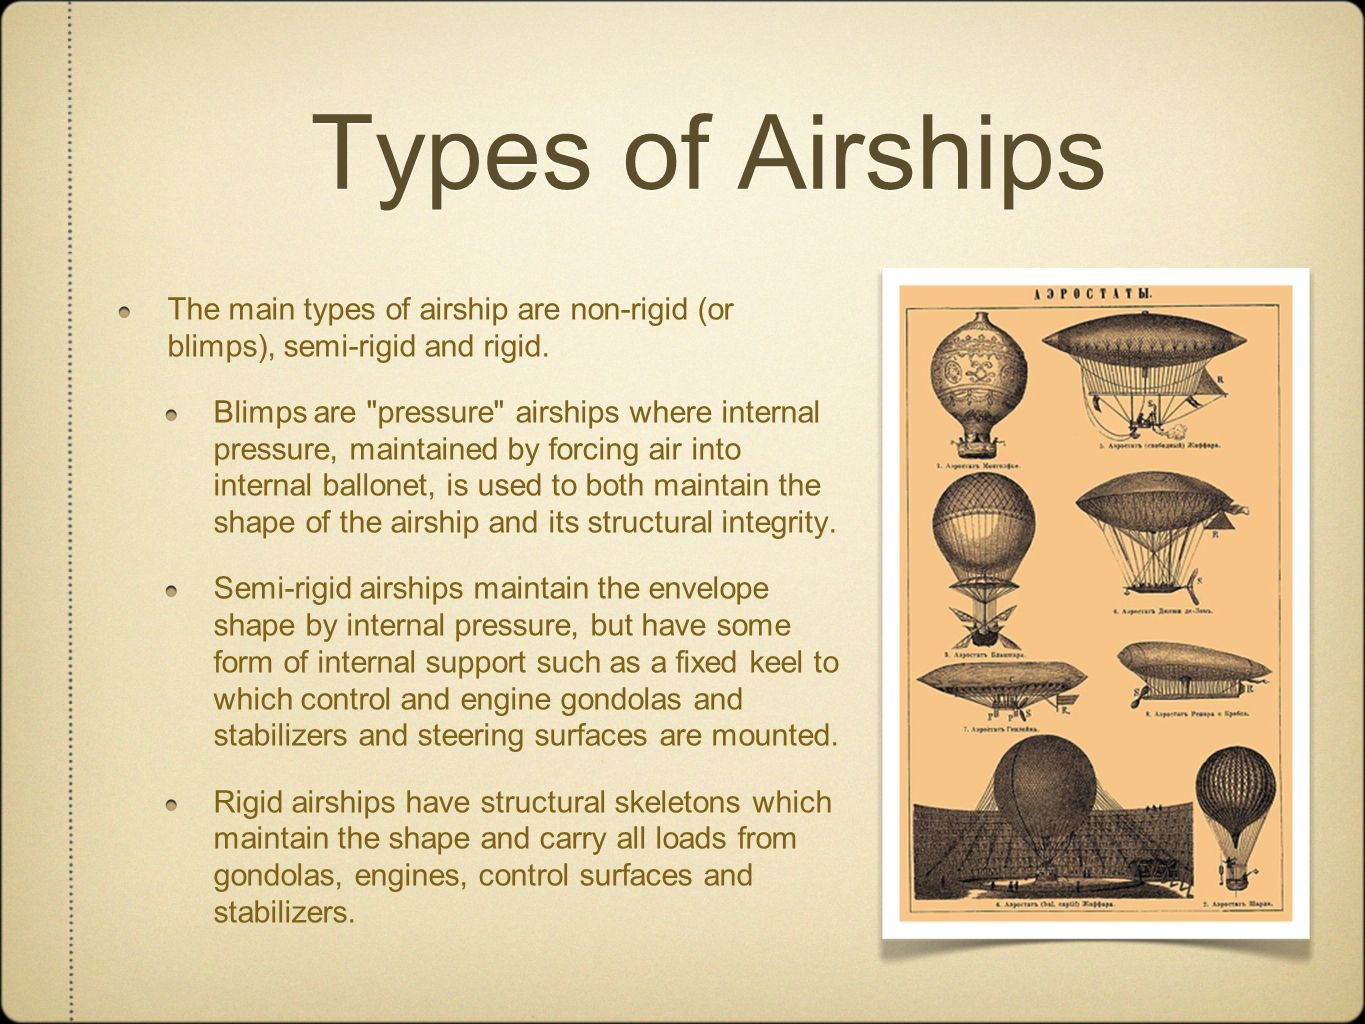 Types of Airships The main types of airship are non-rigid (or blimps), semi-rigid and rigid.